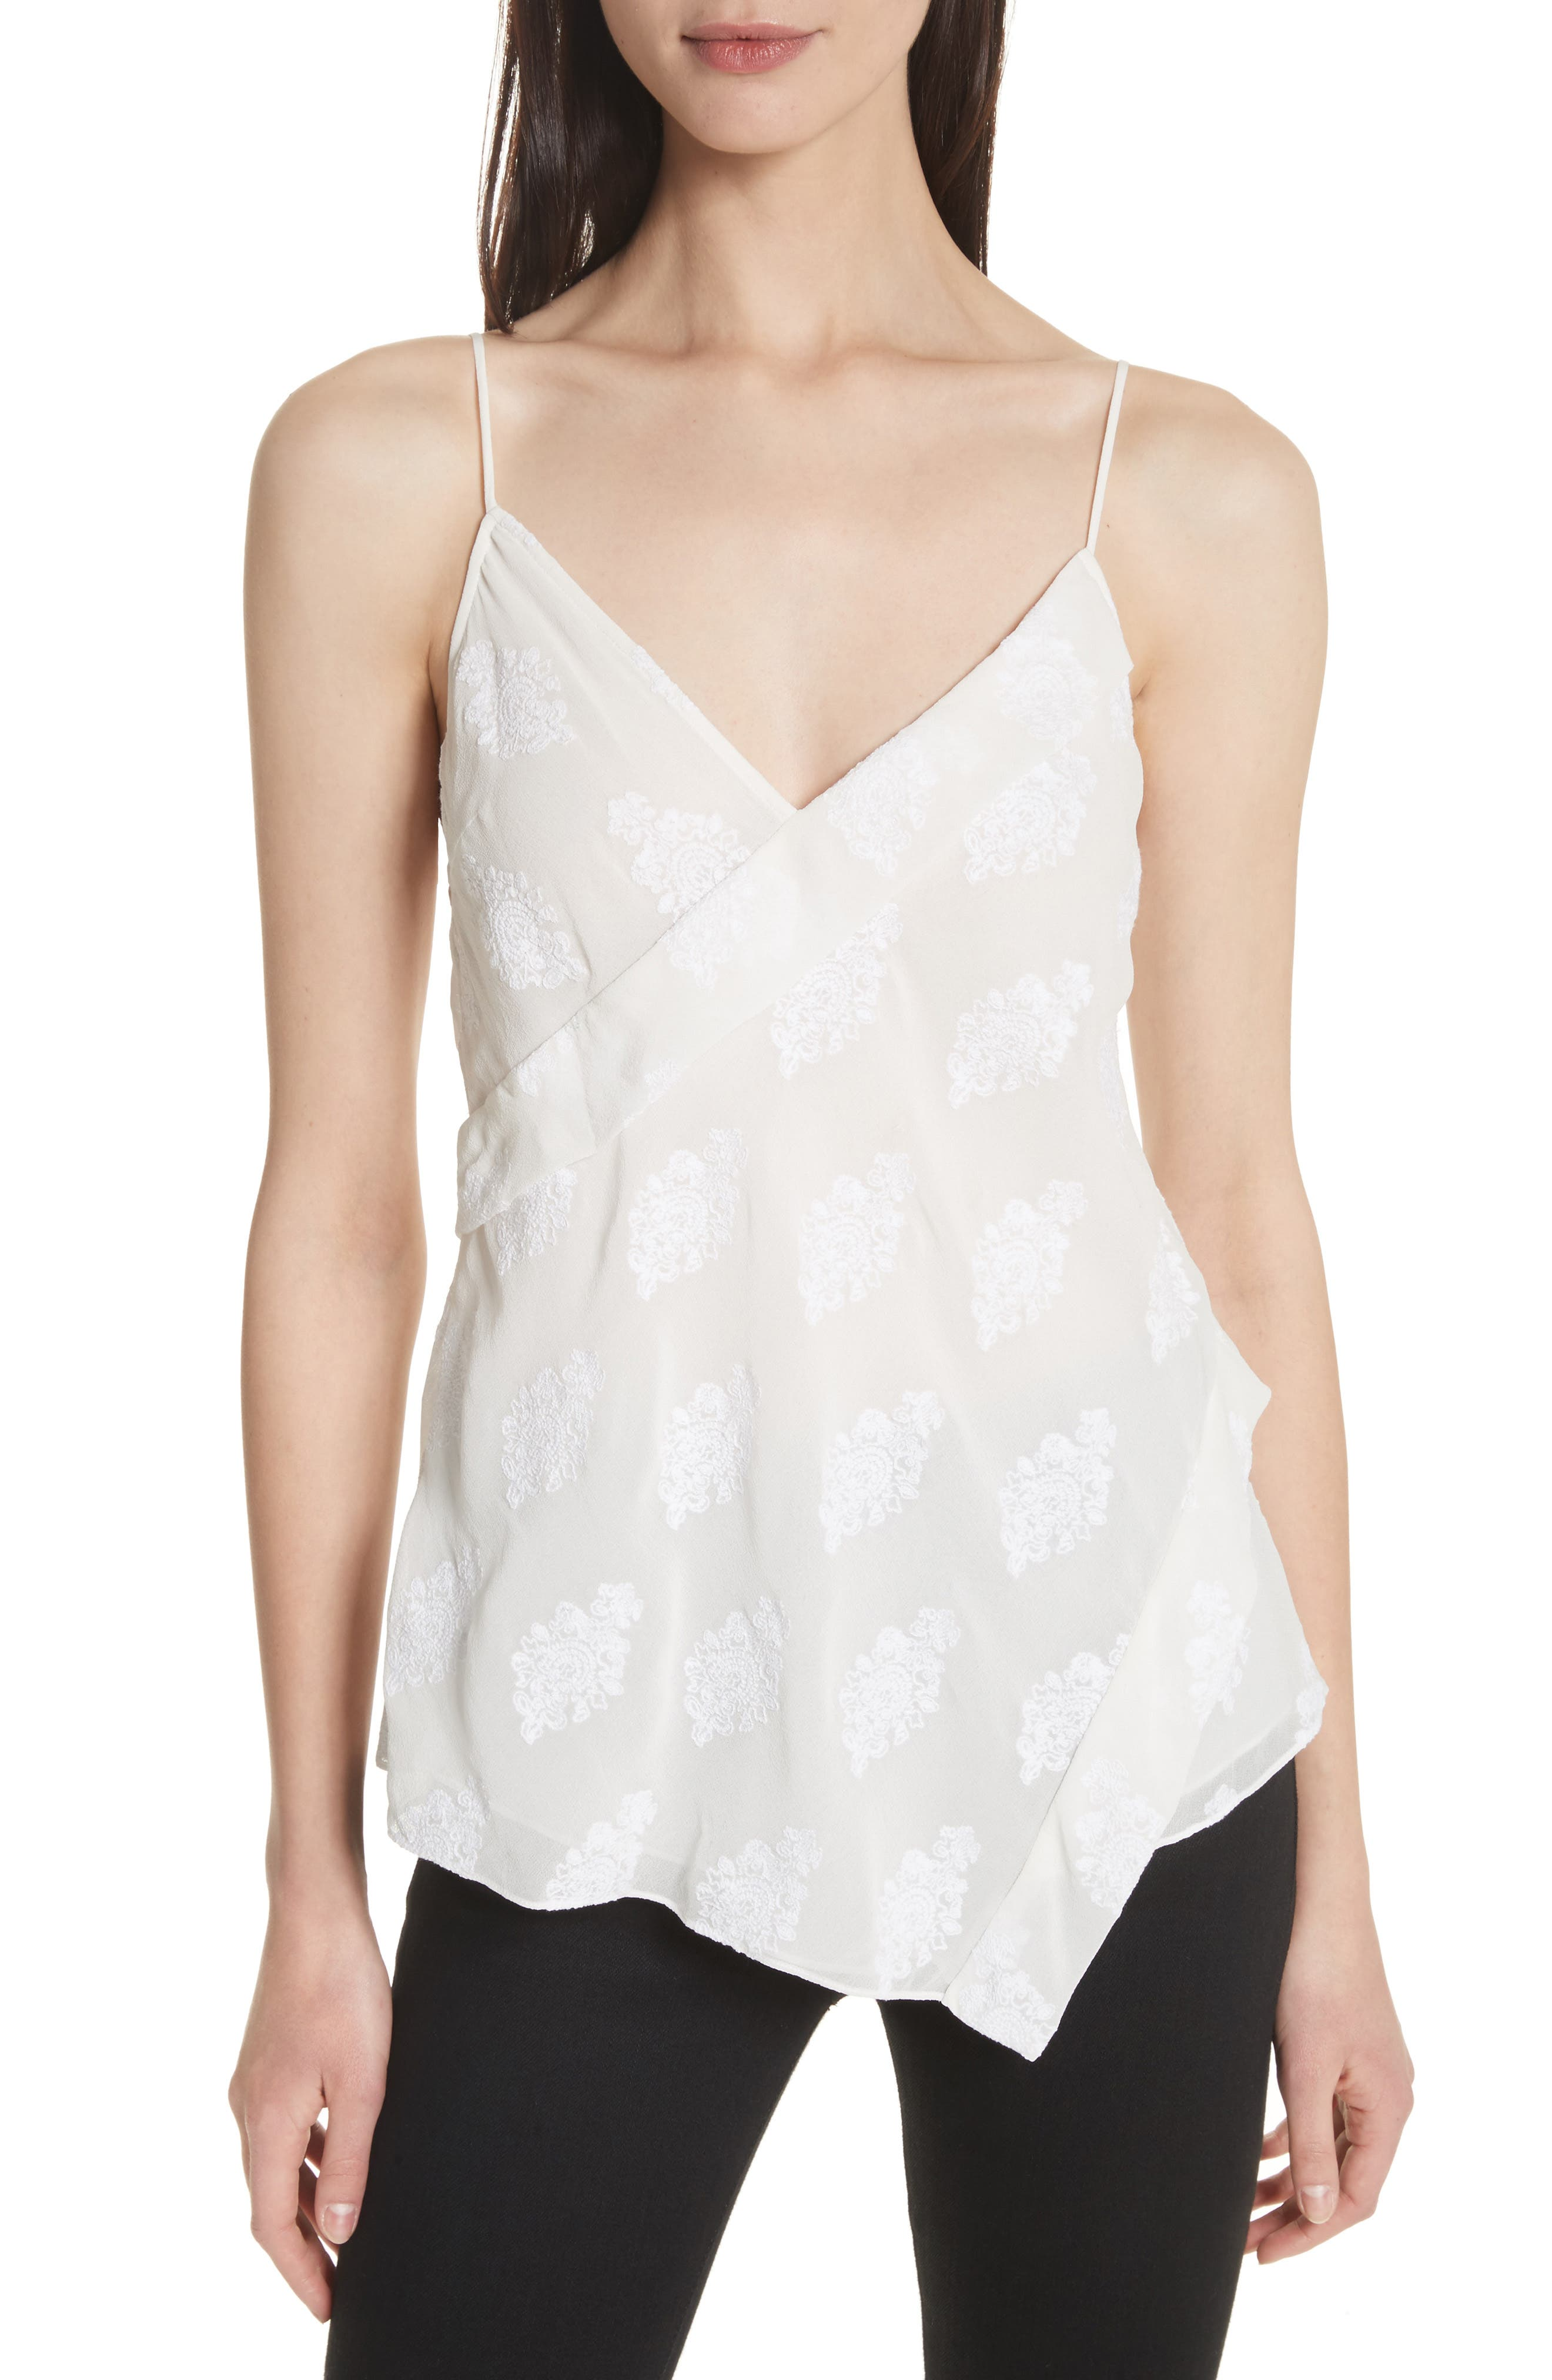 C2.Co Crossover Camisole,                         Main,                         color, 187